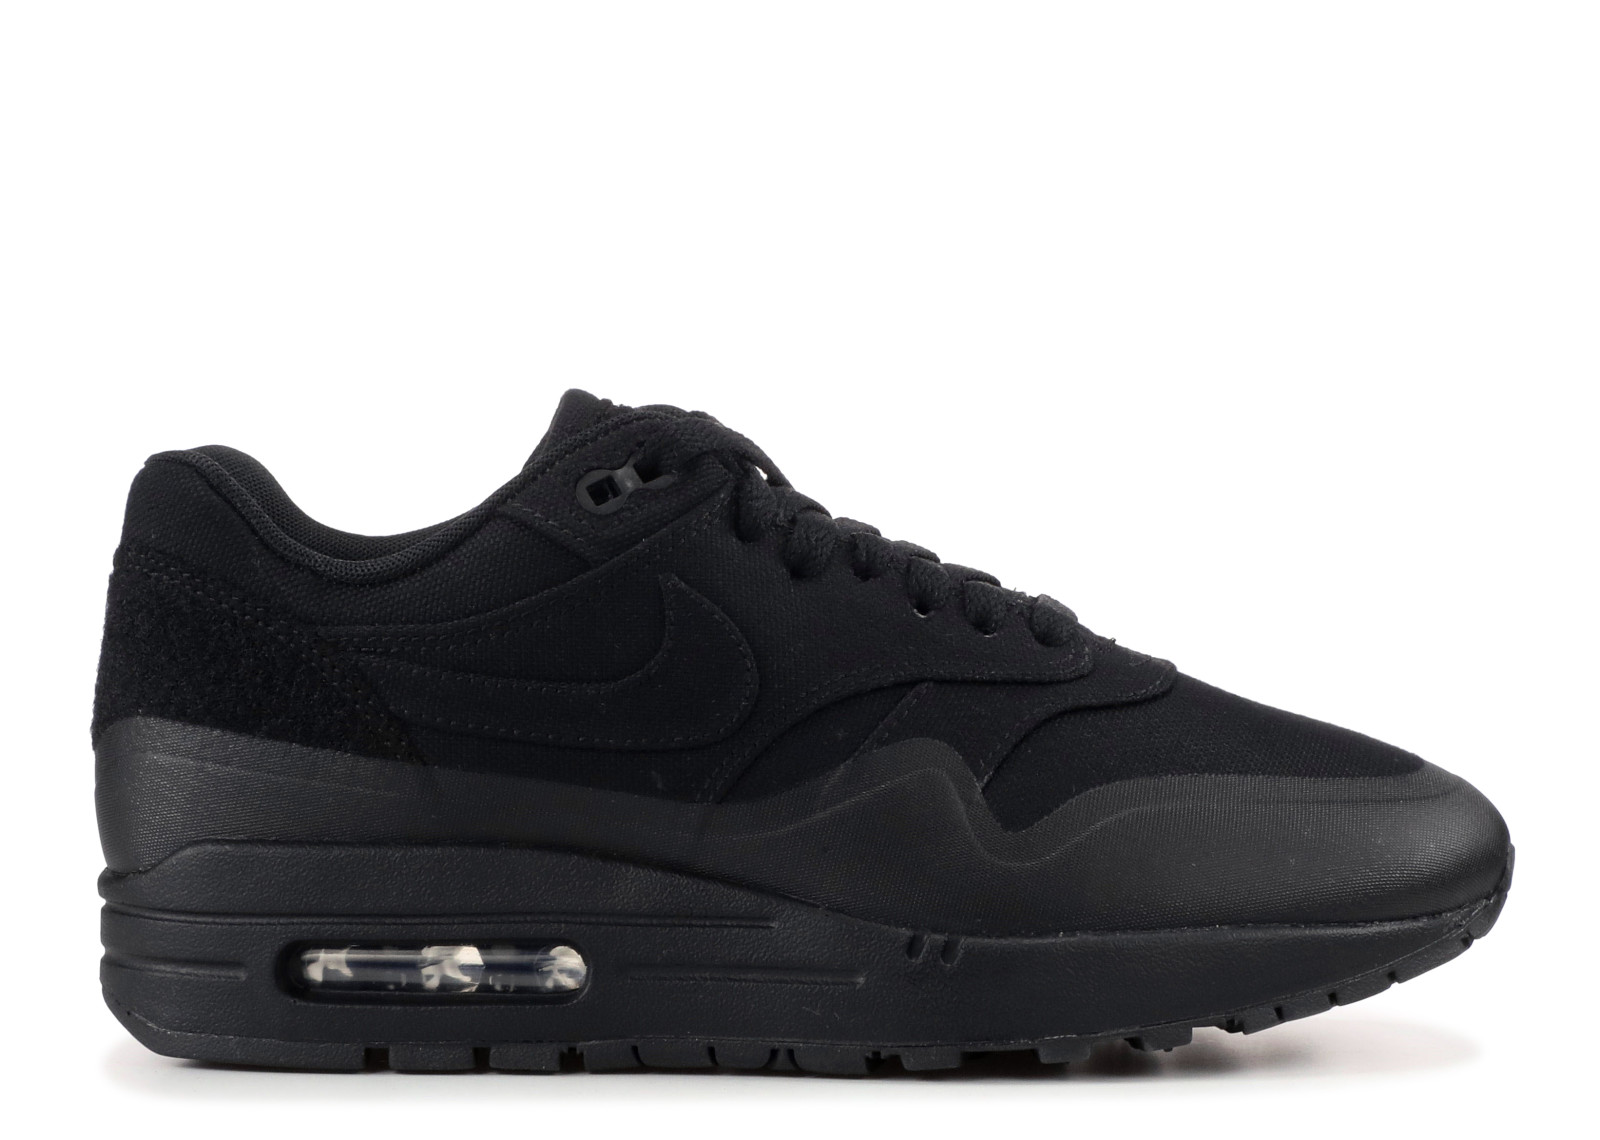 new arrival 07bf1 20122 Nike - Men - Nike Air Max 1 V Sp Black  Patch  - 704901-001 - Size 6.5